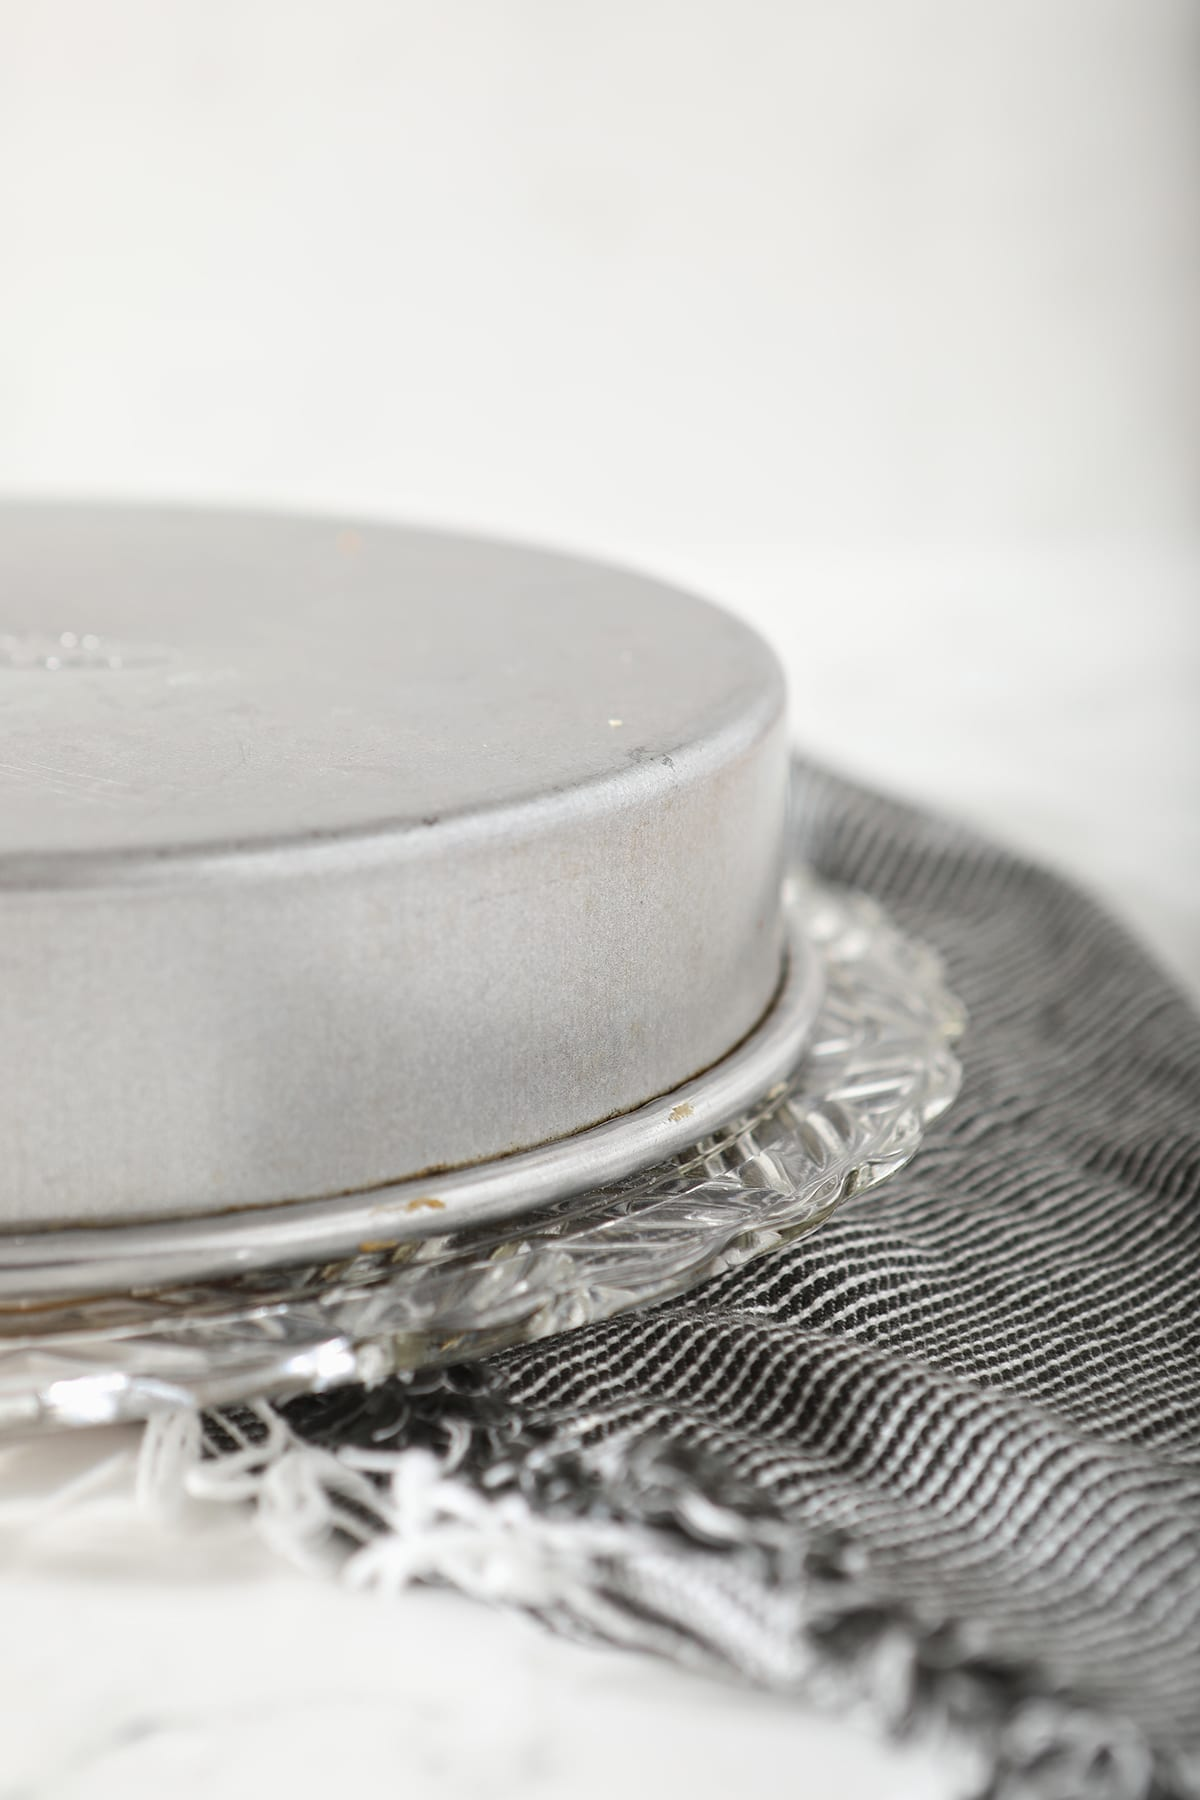 An upside down cake tin on a glass cake stand